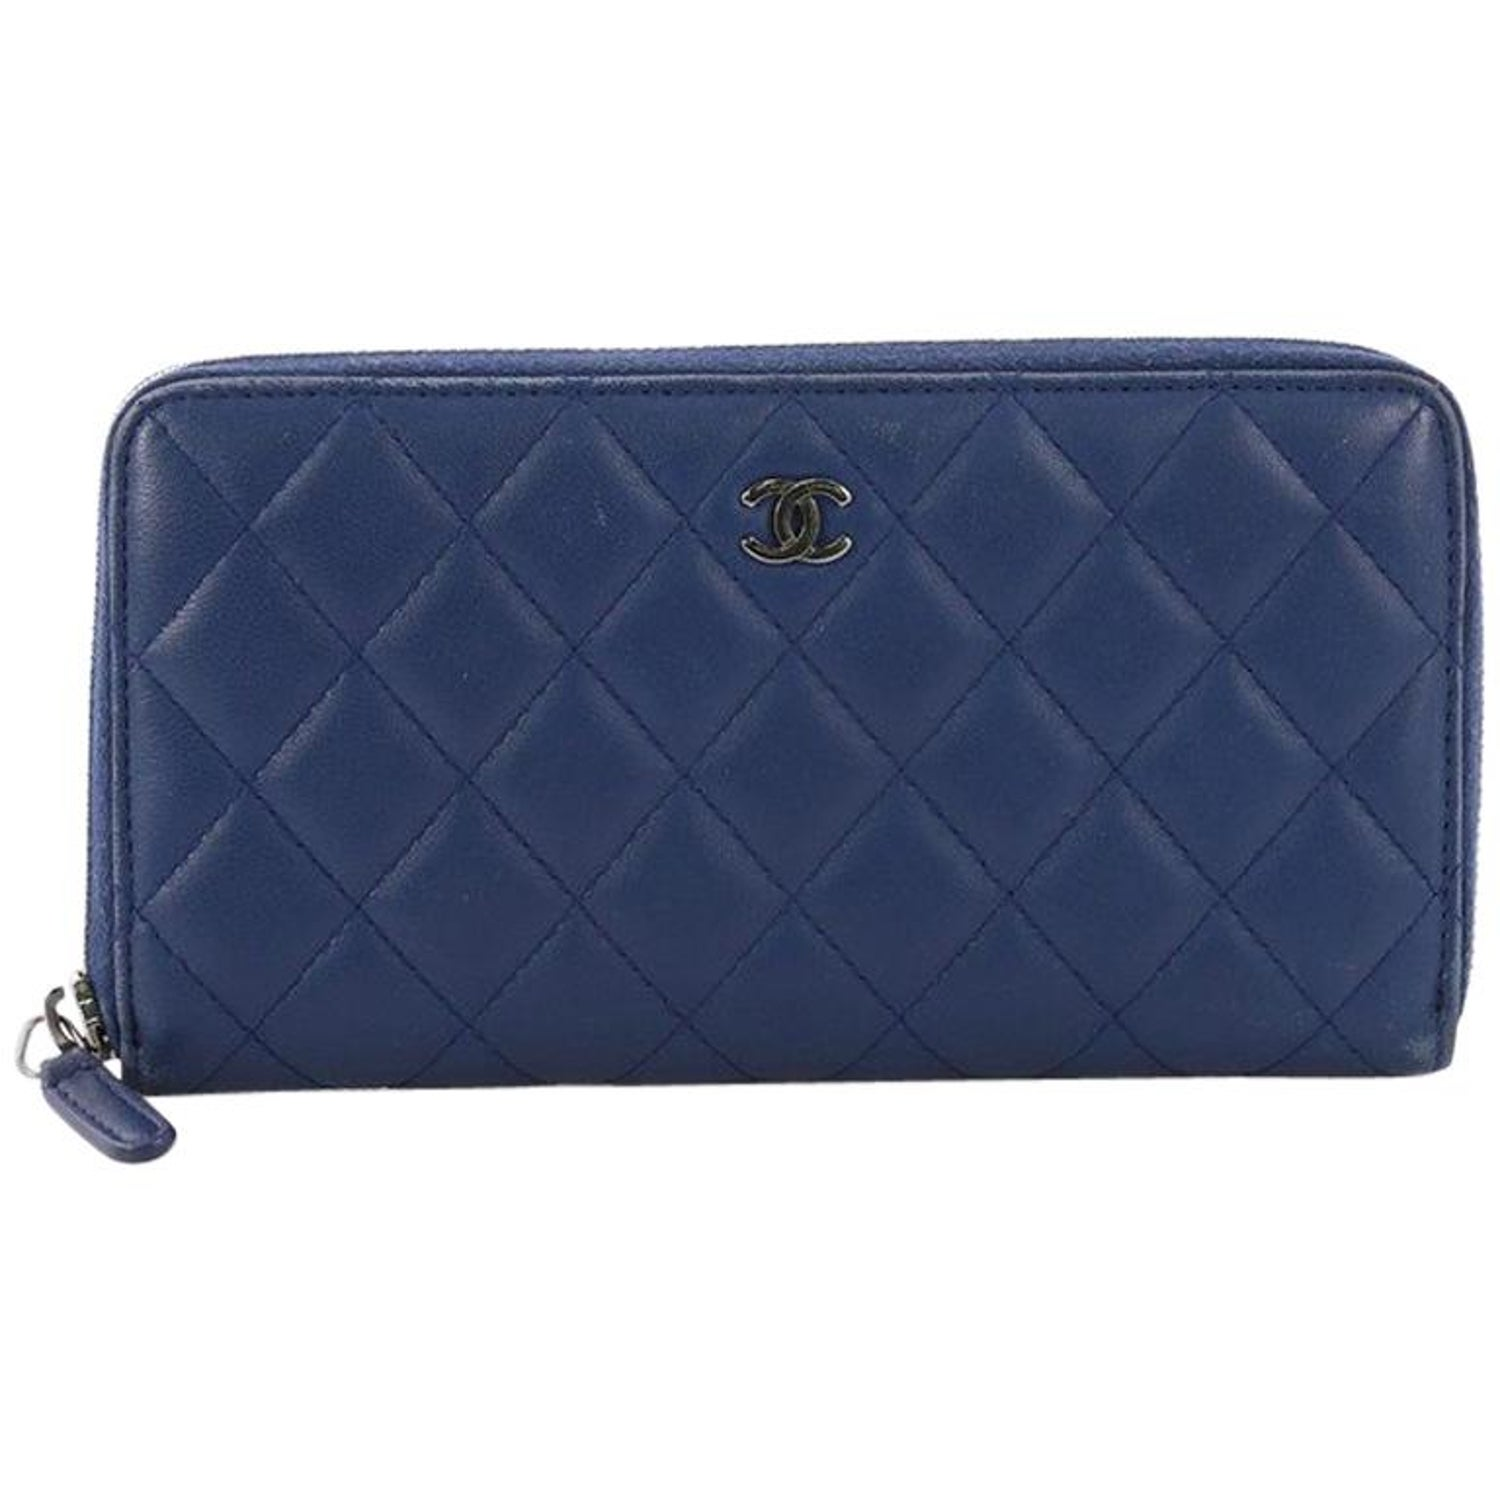 9d4468f1e0e4 Chanel Zip Around Wallet Quilted Lambskin Long at 1stdibs